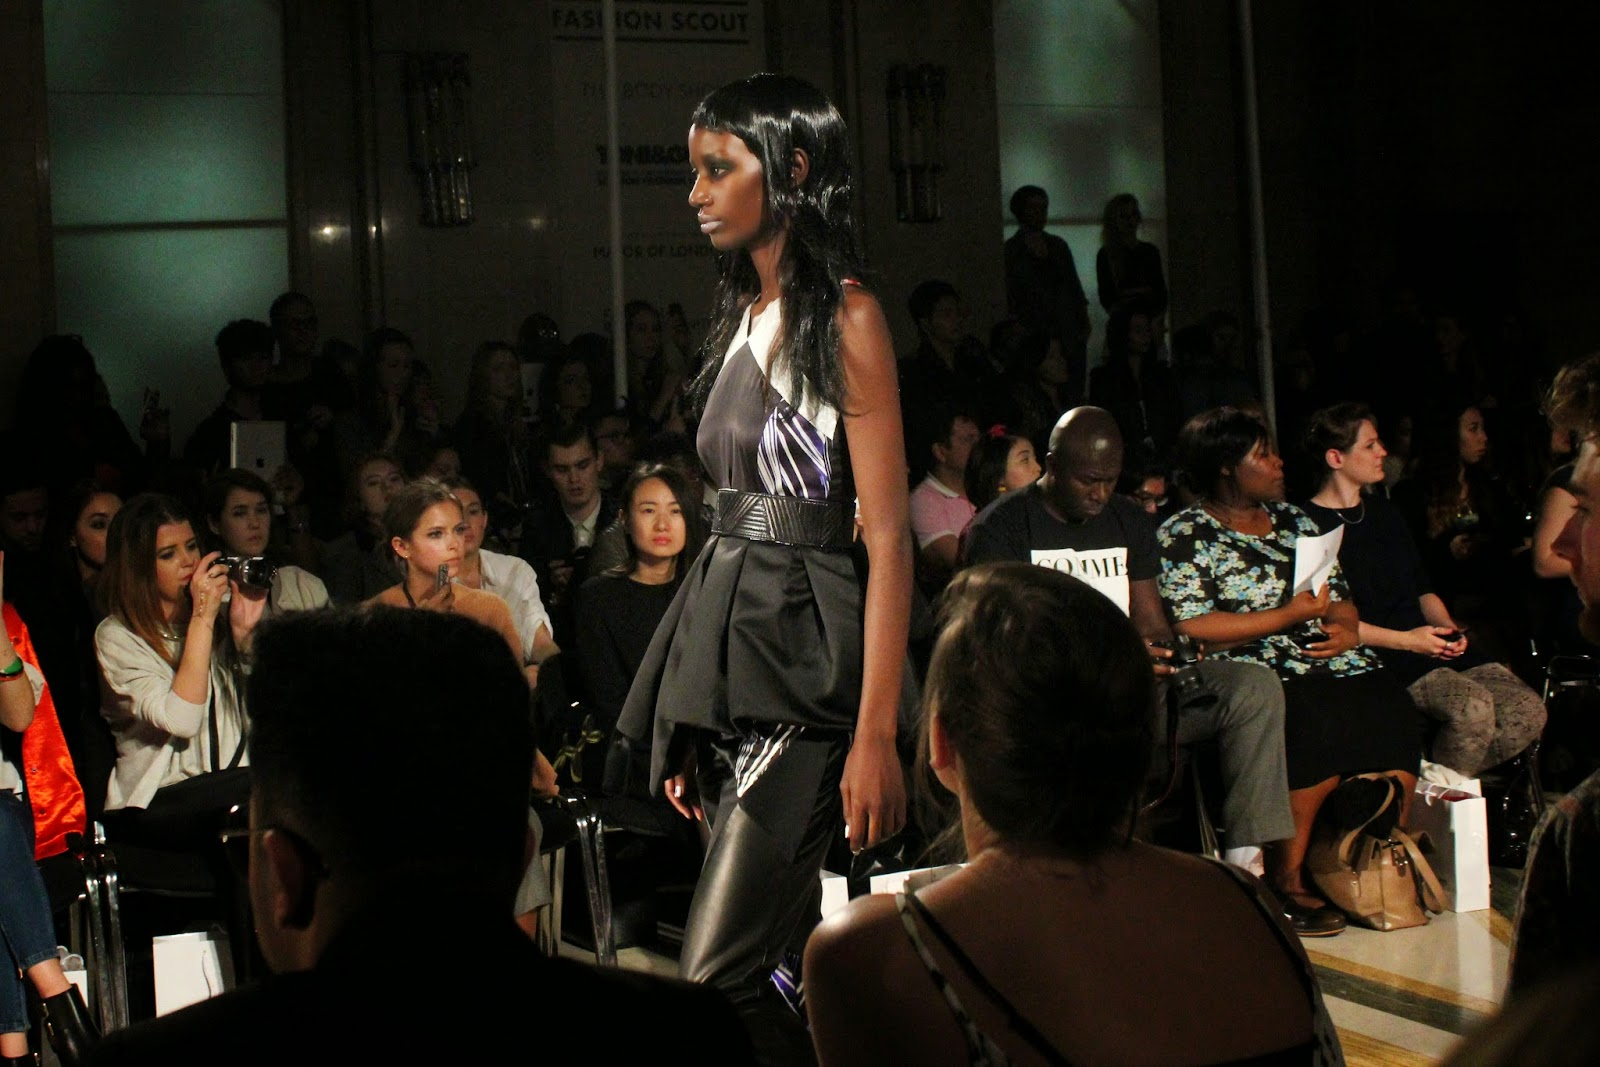 london-fashion-week-2014-lfw-spring-summer-2015-blogger-fashion-Dora-Abodi-catwalk-models-freemasons hall-fashion-scout-top-trousers